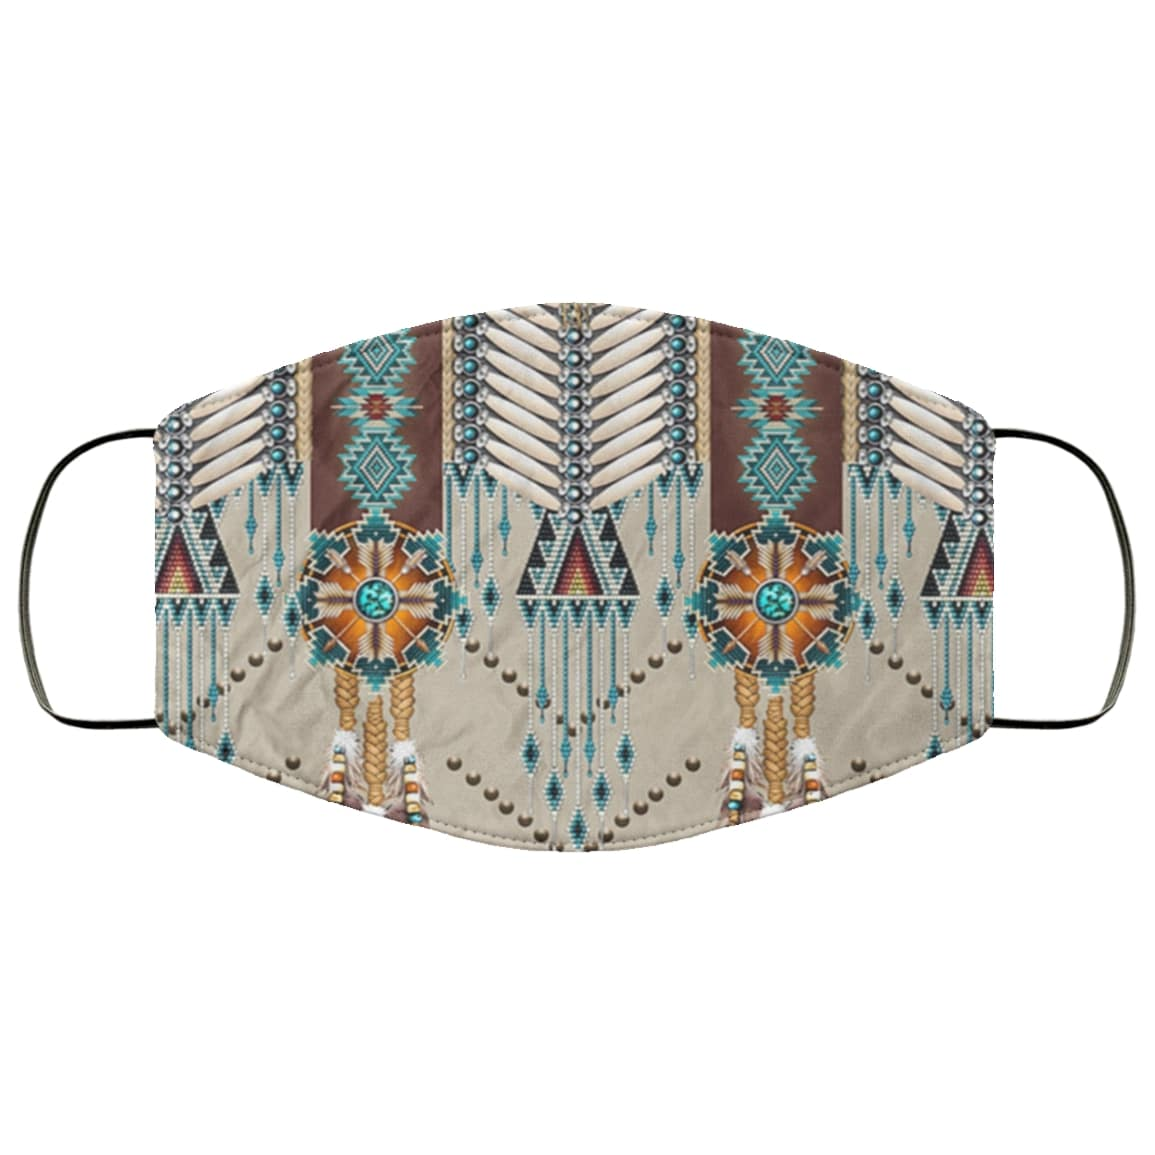 Native american culture symbol all over printed face mask 2